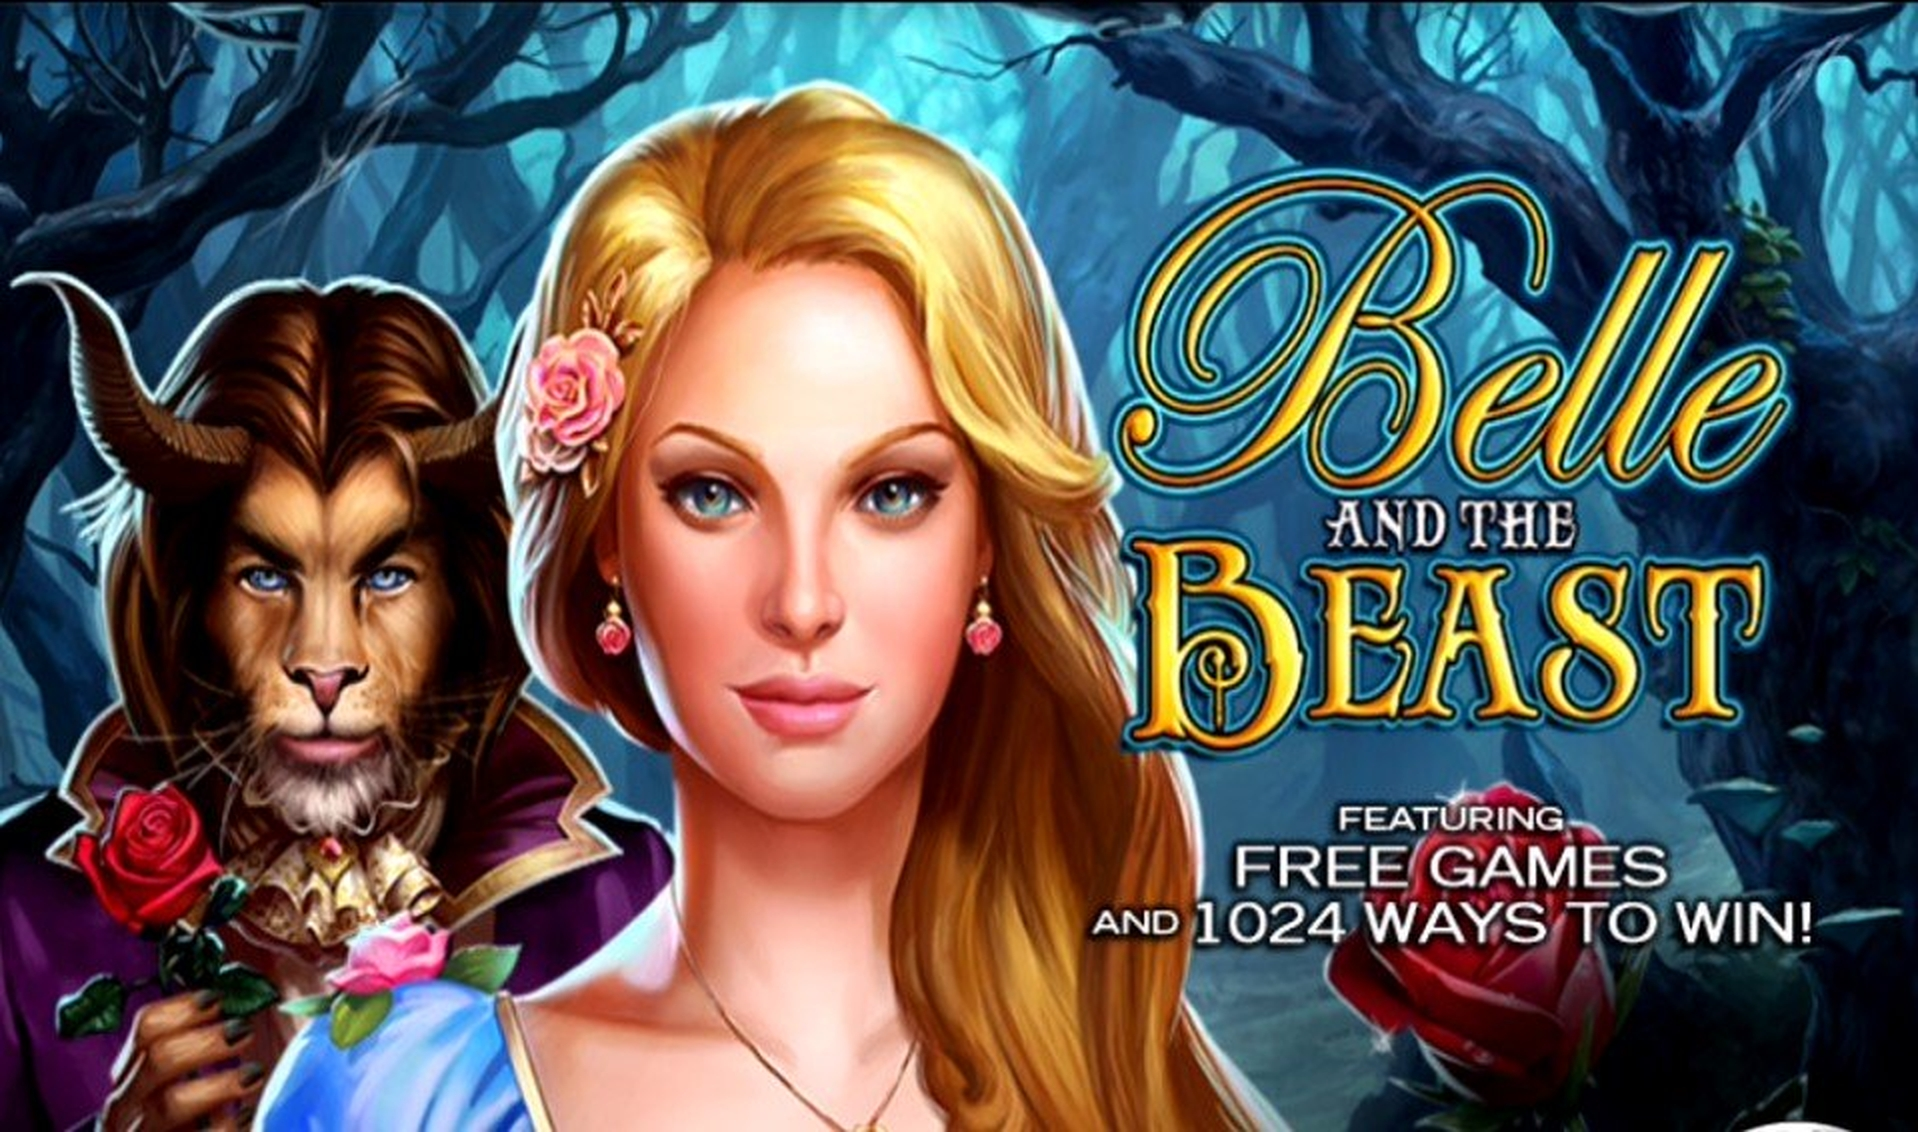 The Belle and the Beast Online Slot Demo Game by High 5 Games